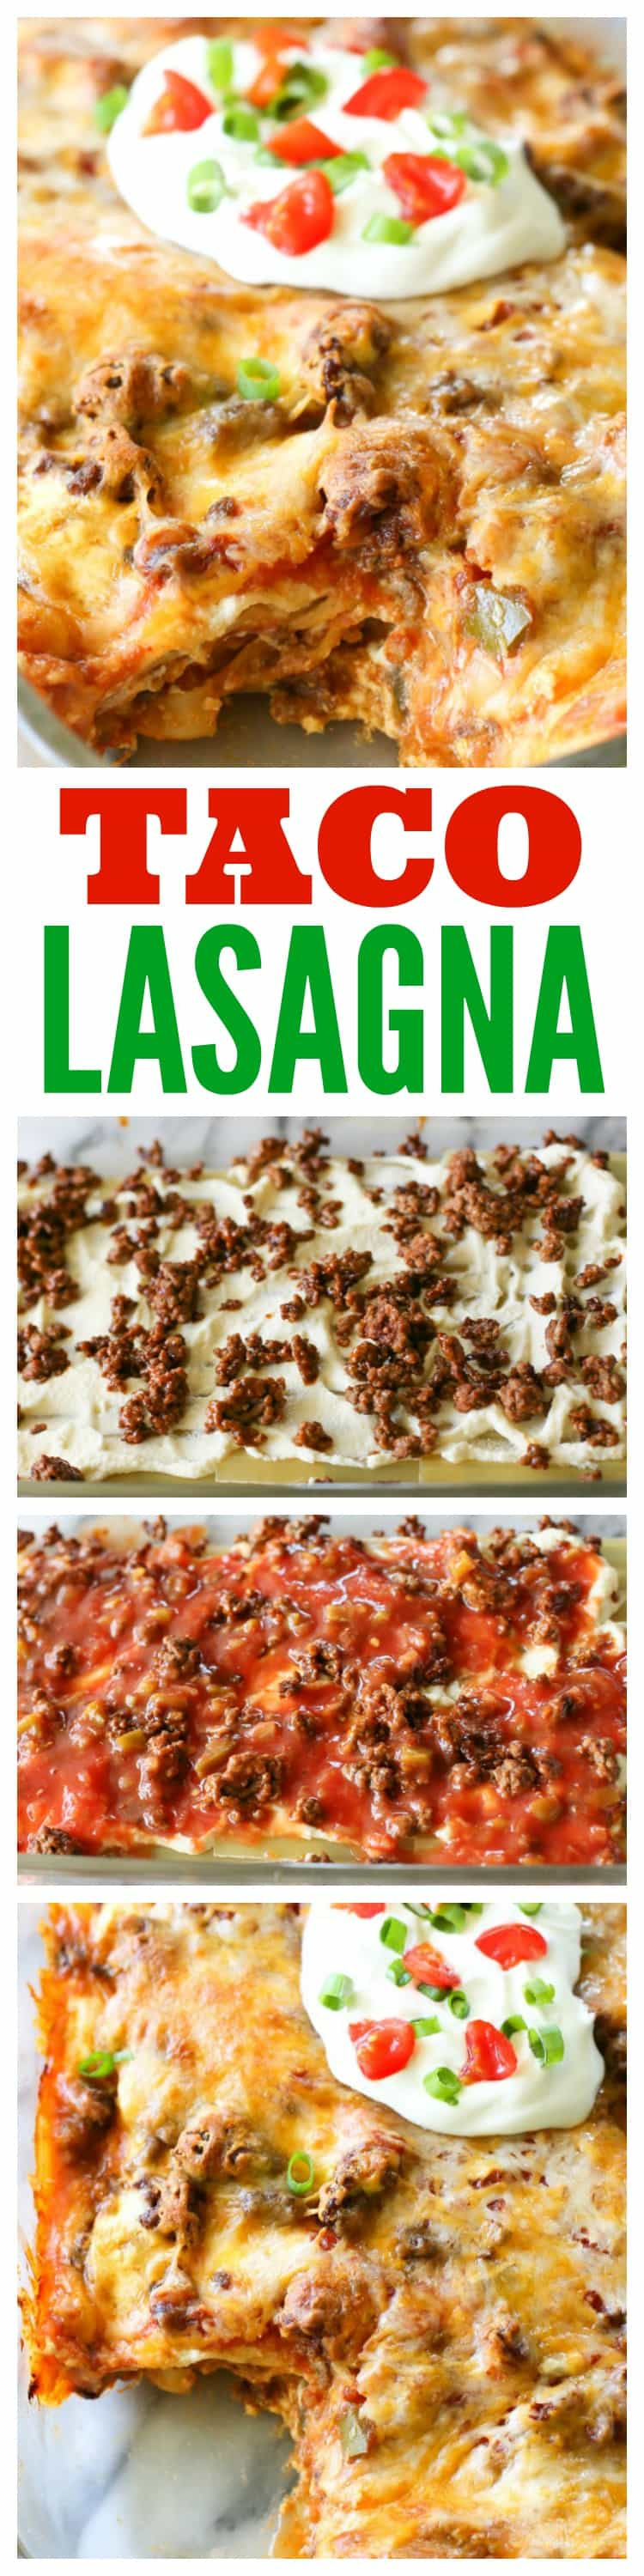 Taco Lasagna - Layers of lasagna noodles, salsa, taco meat, and cheese. Comfort food at its best! #taco #lasagna #mexican #italian #dinner #recipe